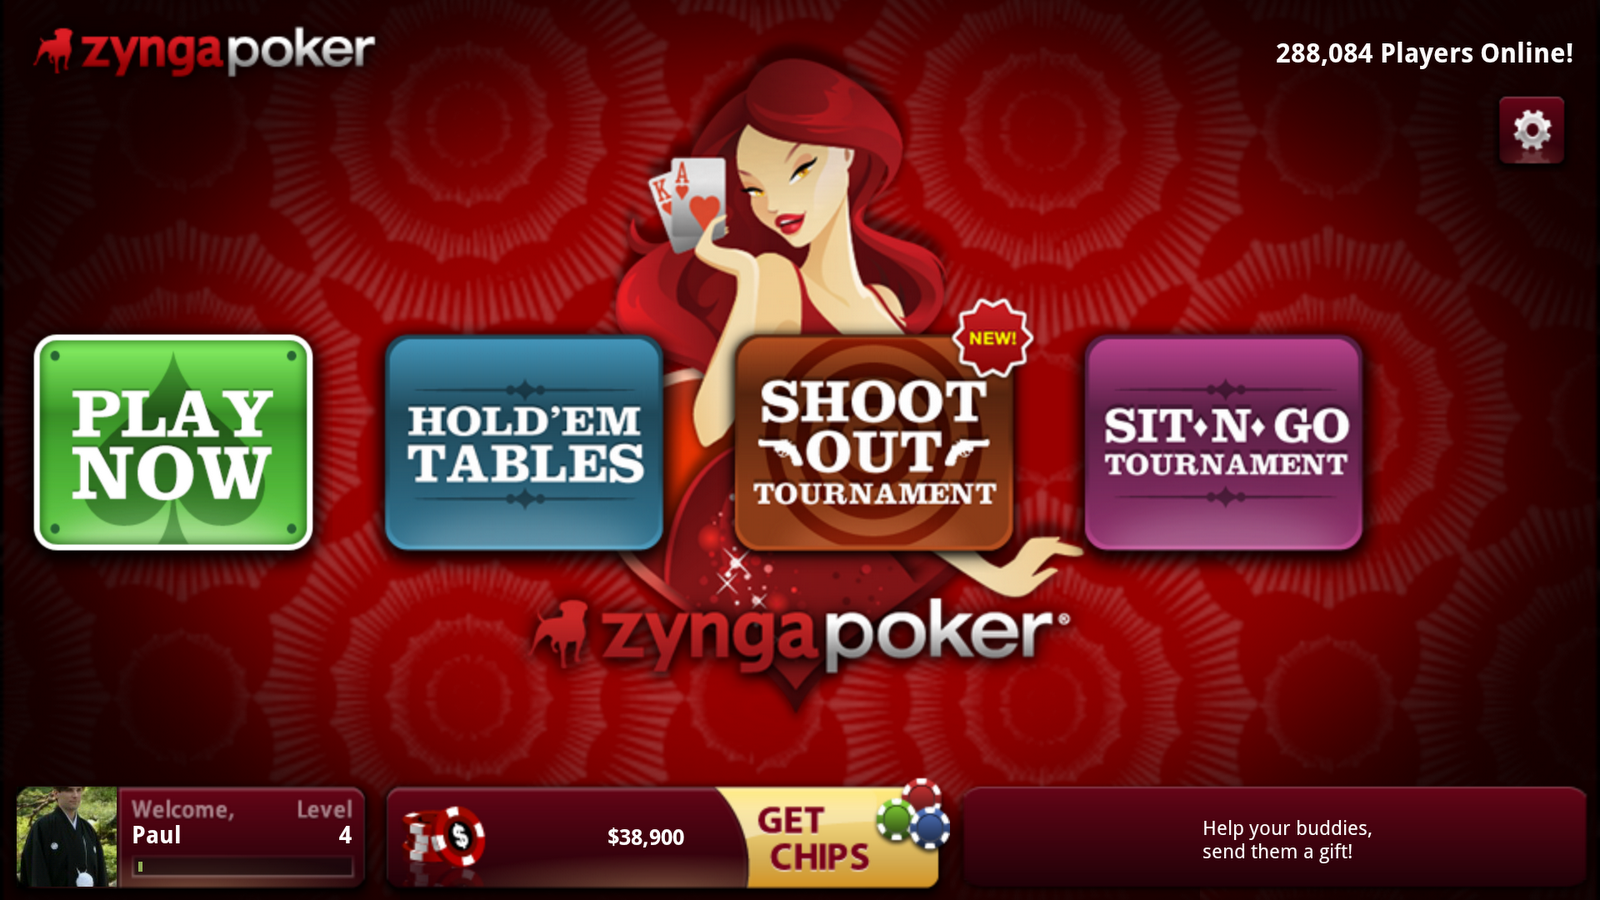 Zynga Poker Google TV